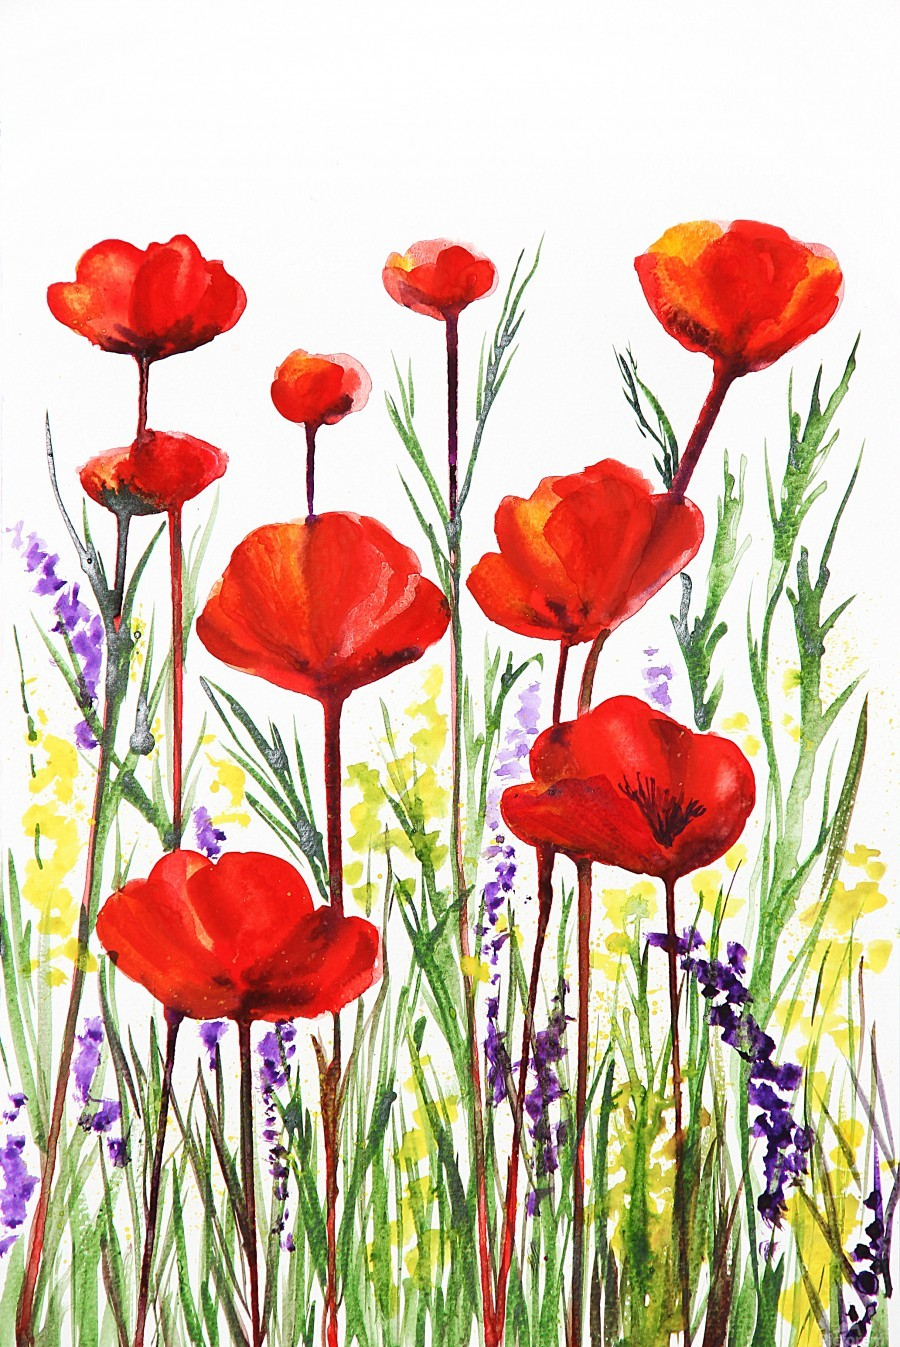 Red Poppies And Lavender Field Watercolor  Print